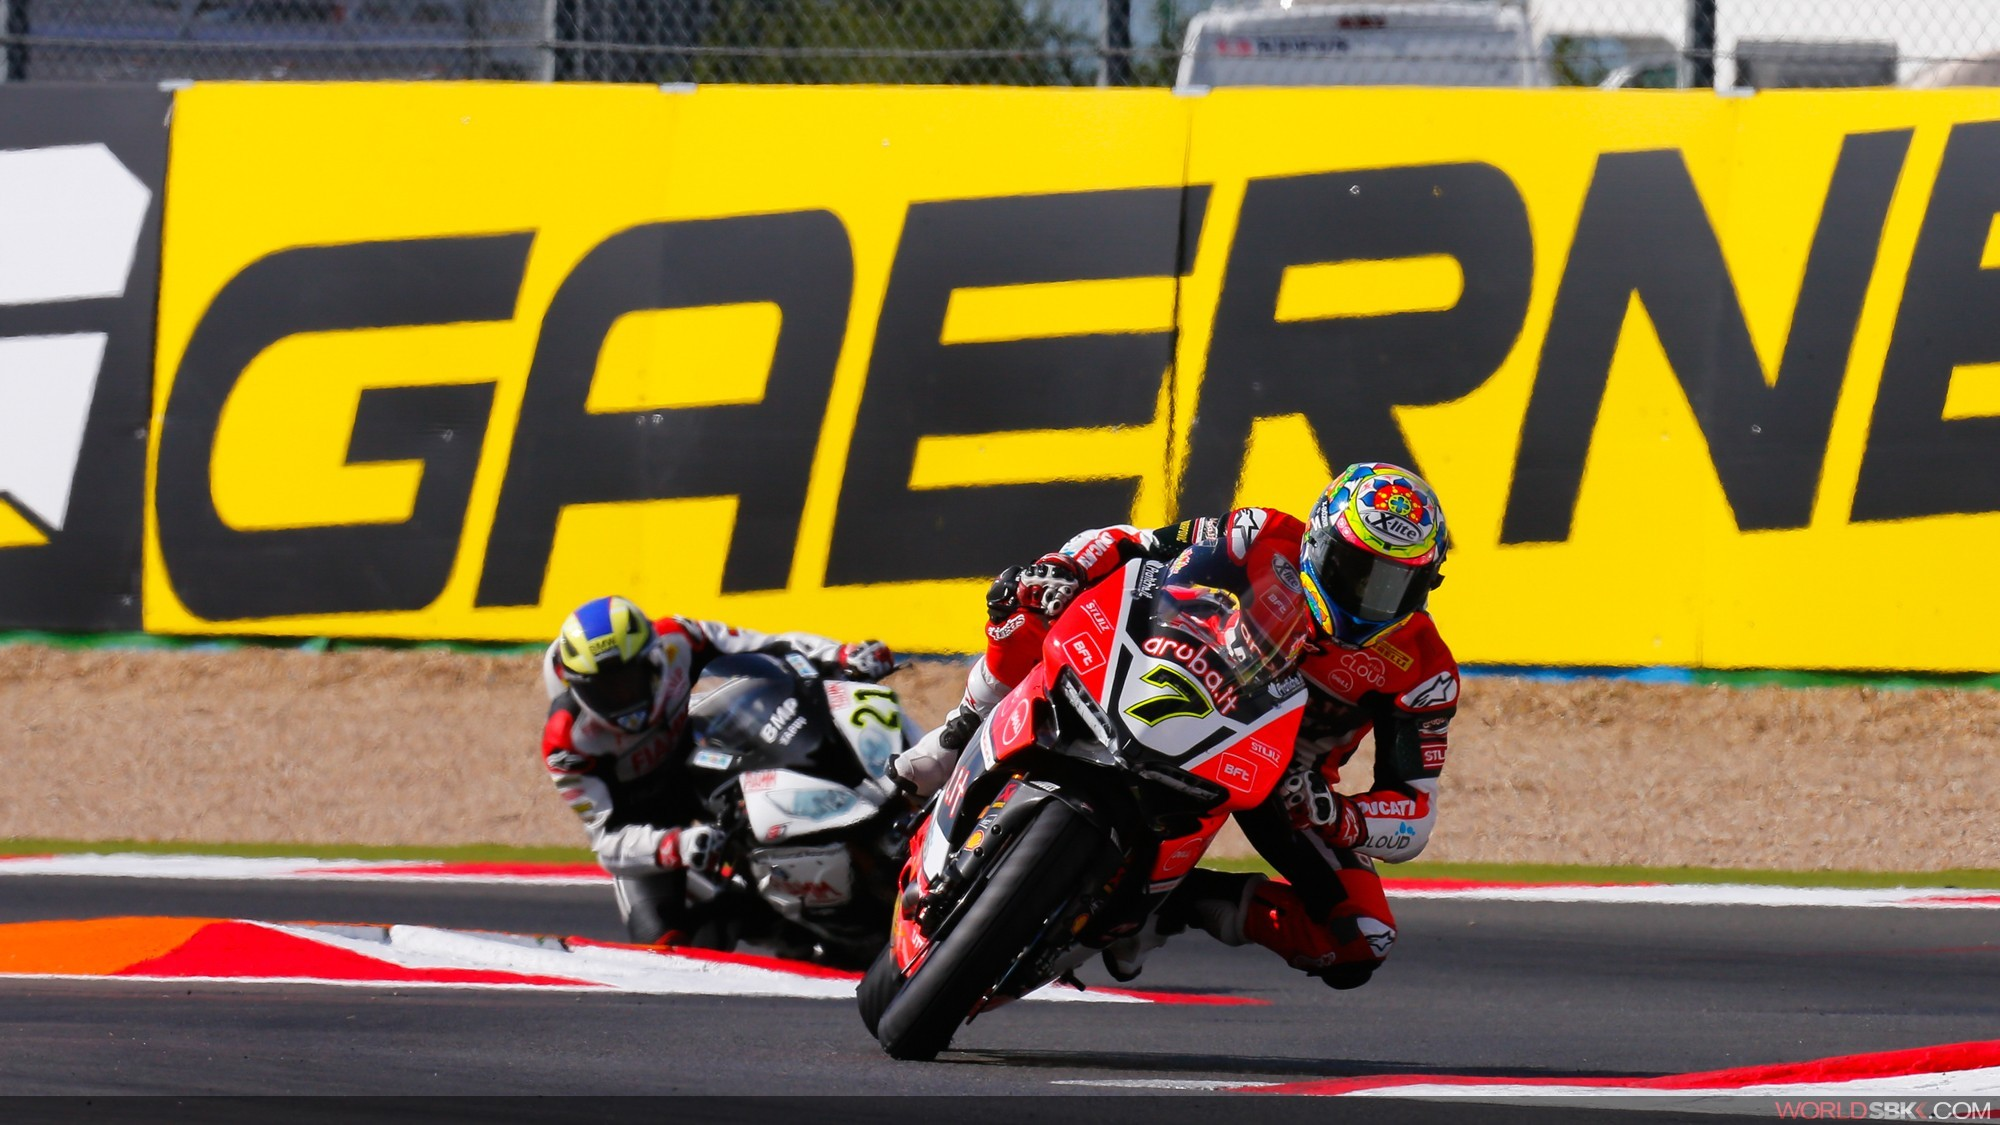 Chaz Davies will be racing in Thailand this weekend. Photo: worldSBK.com